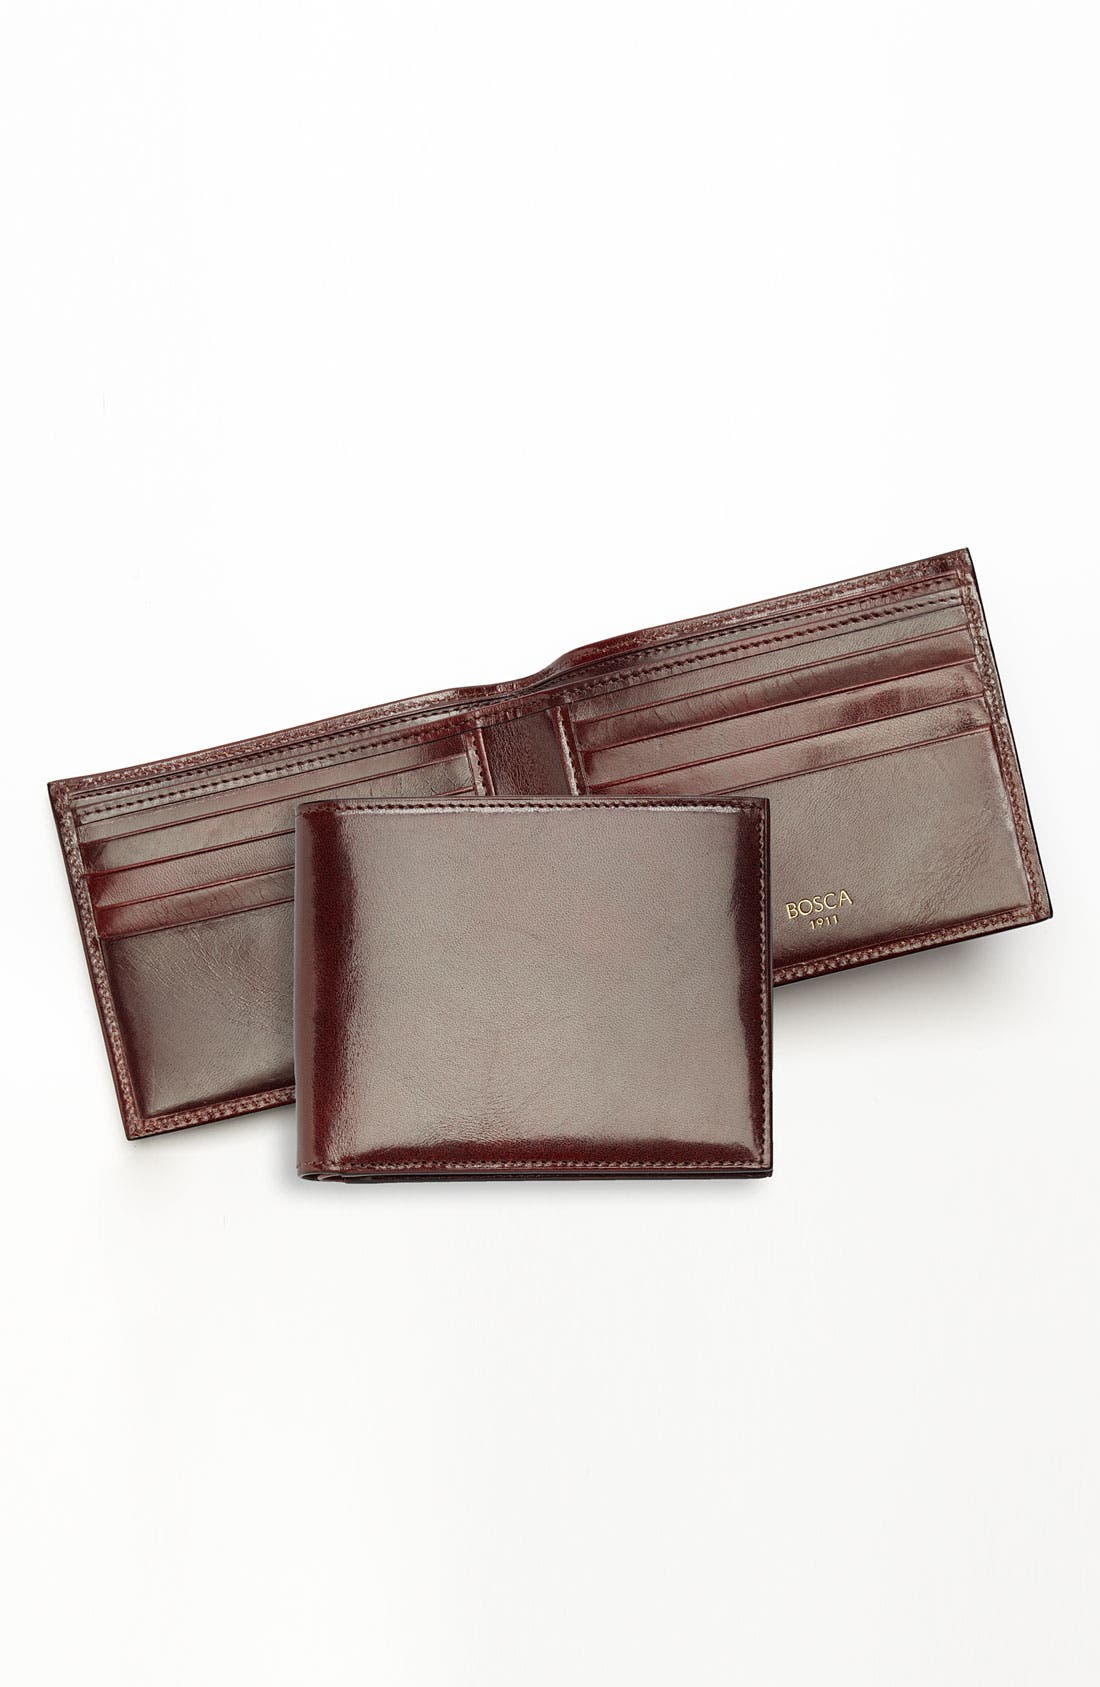 'Old Leather' Deluxe Wallet,                             Alternate thumbnail 4, color,                             Dark Brown